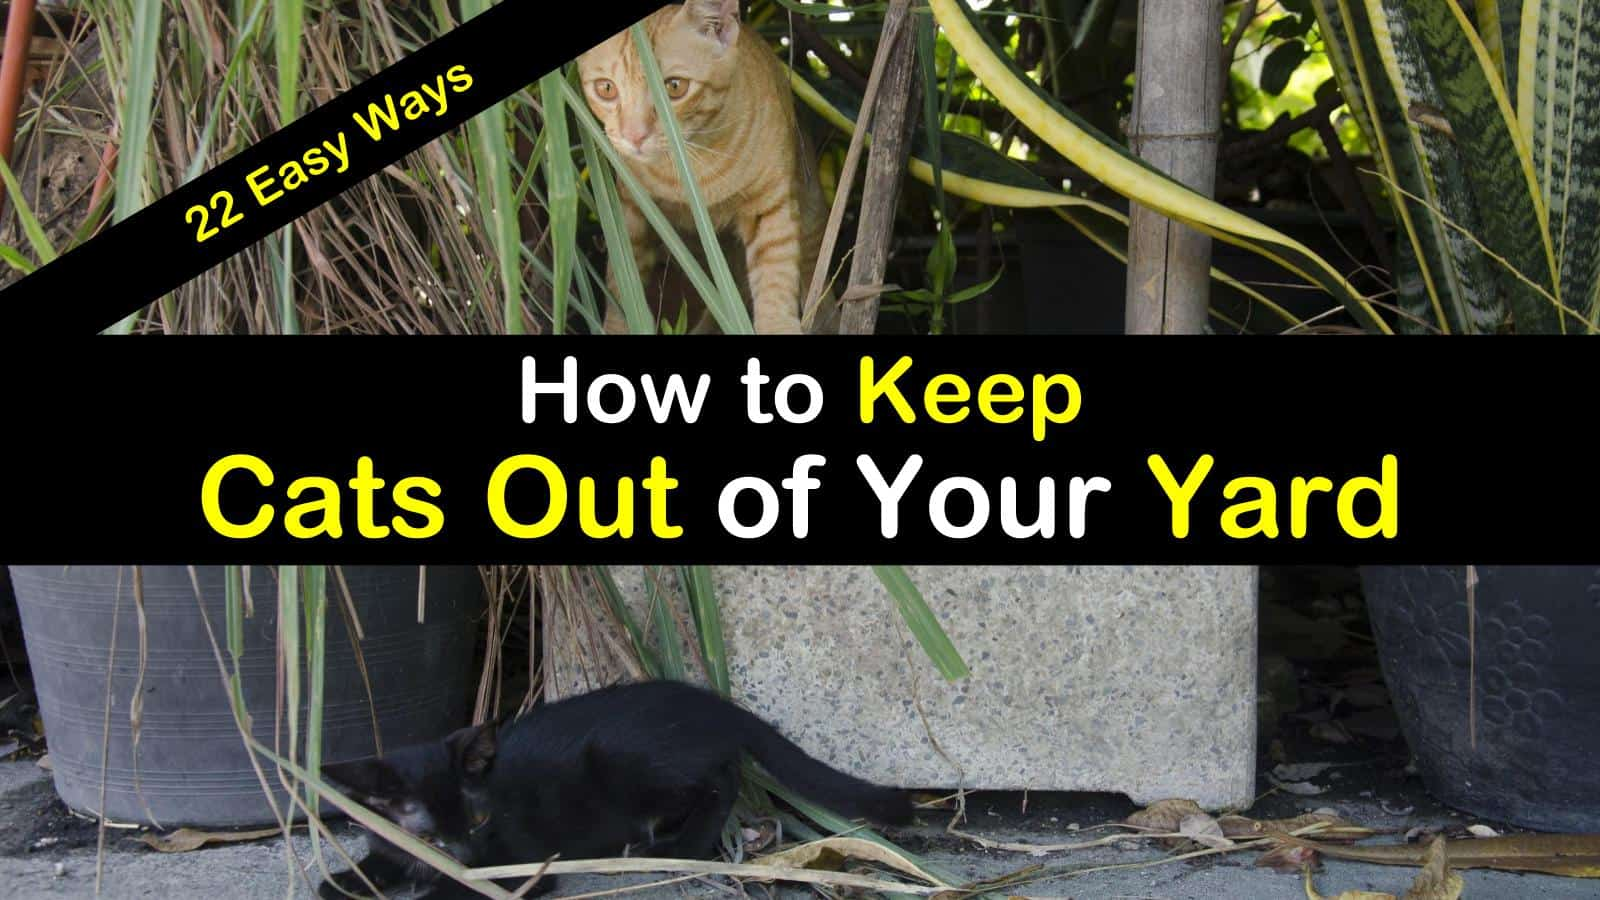 How to Keep Cats Out of Your Yard titleimg1